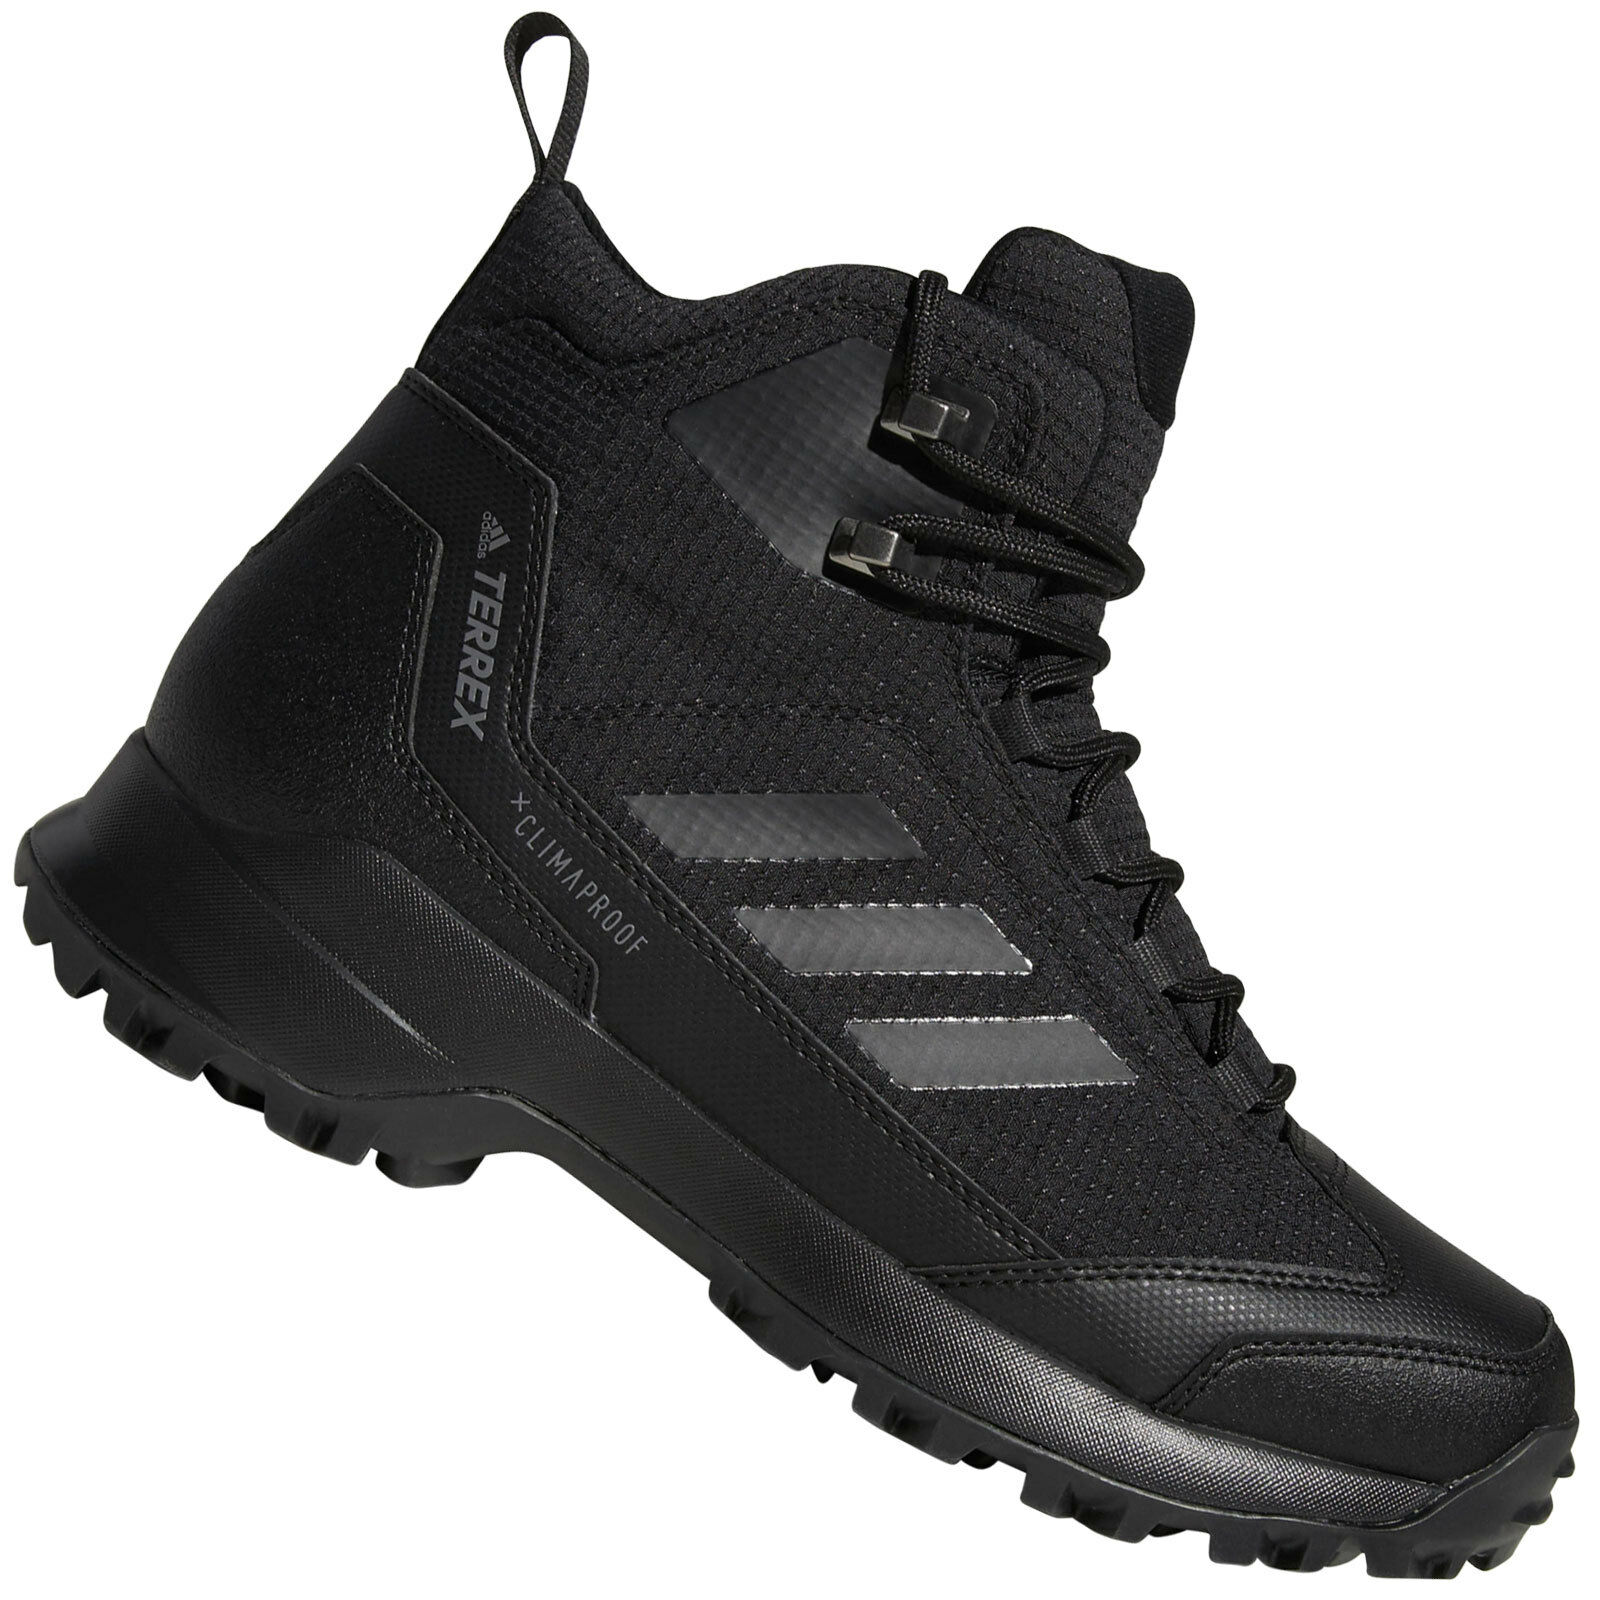 Adidas Performance Terrex Heron Climaproof Men's Hiking Boots Winter shoes